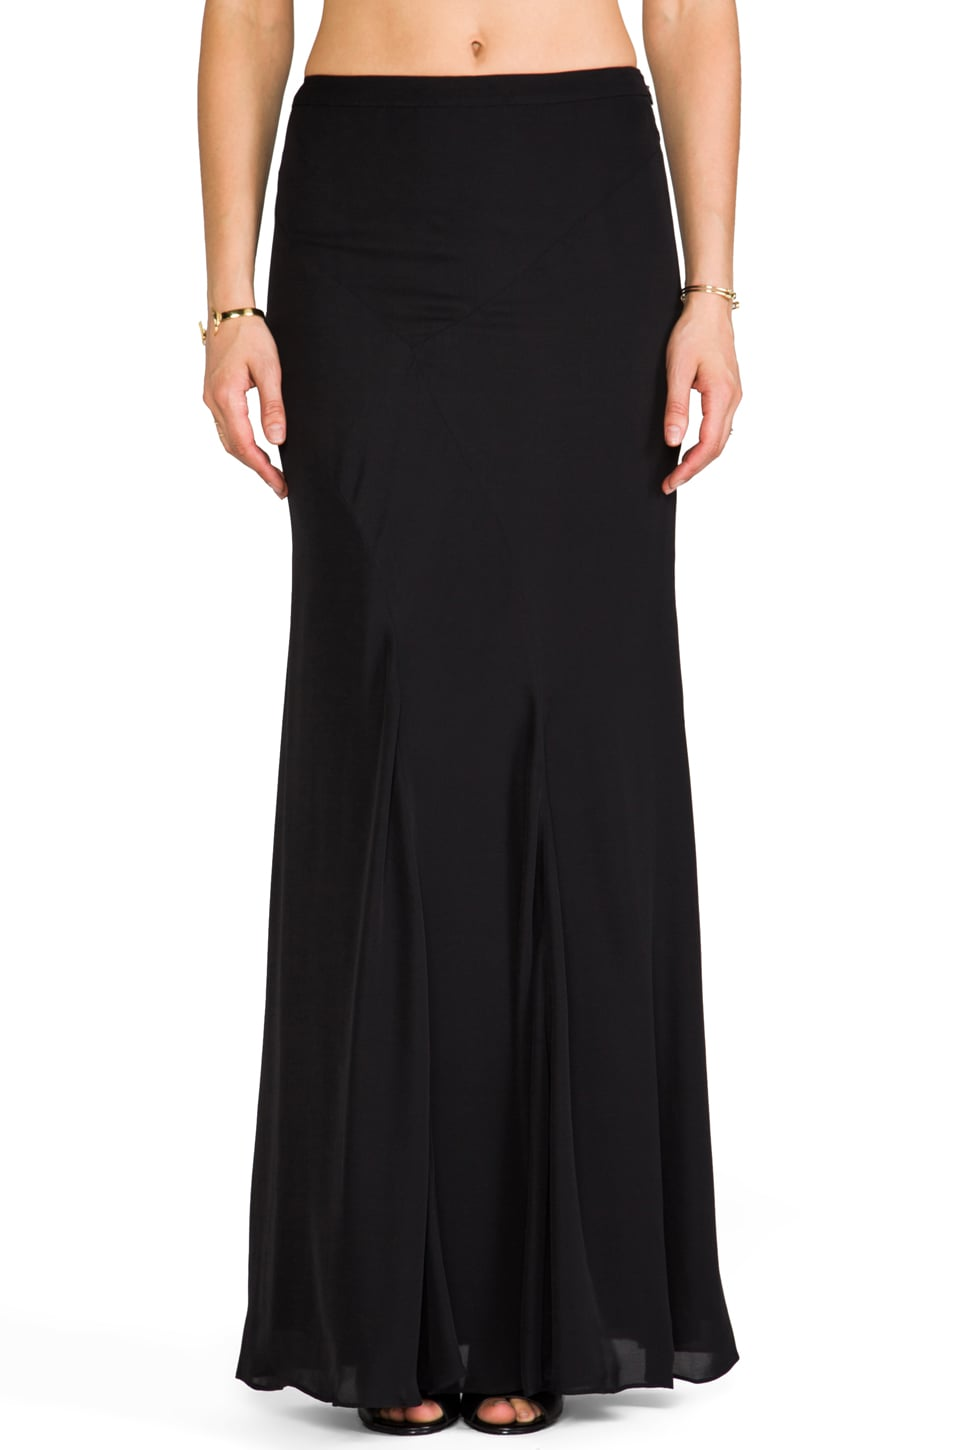 DEREK LAM 10 CROSBY Seam Detail Maxi Skirt in Black